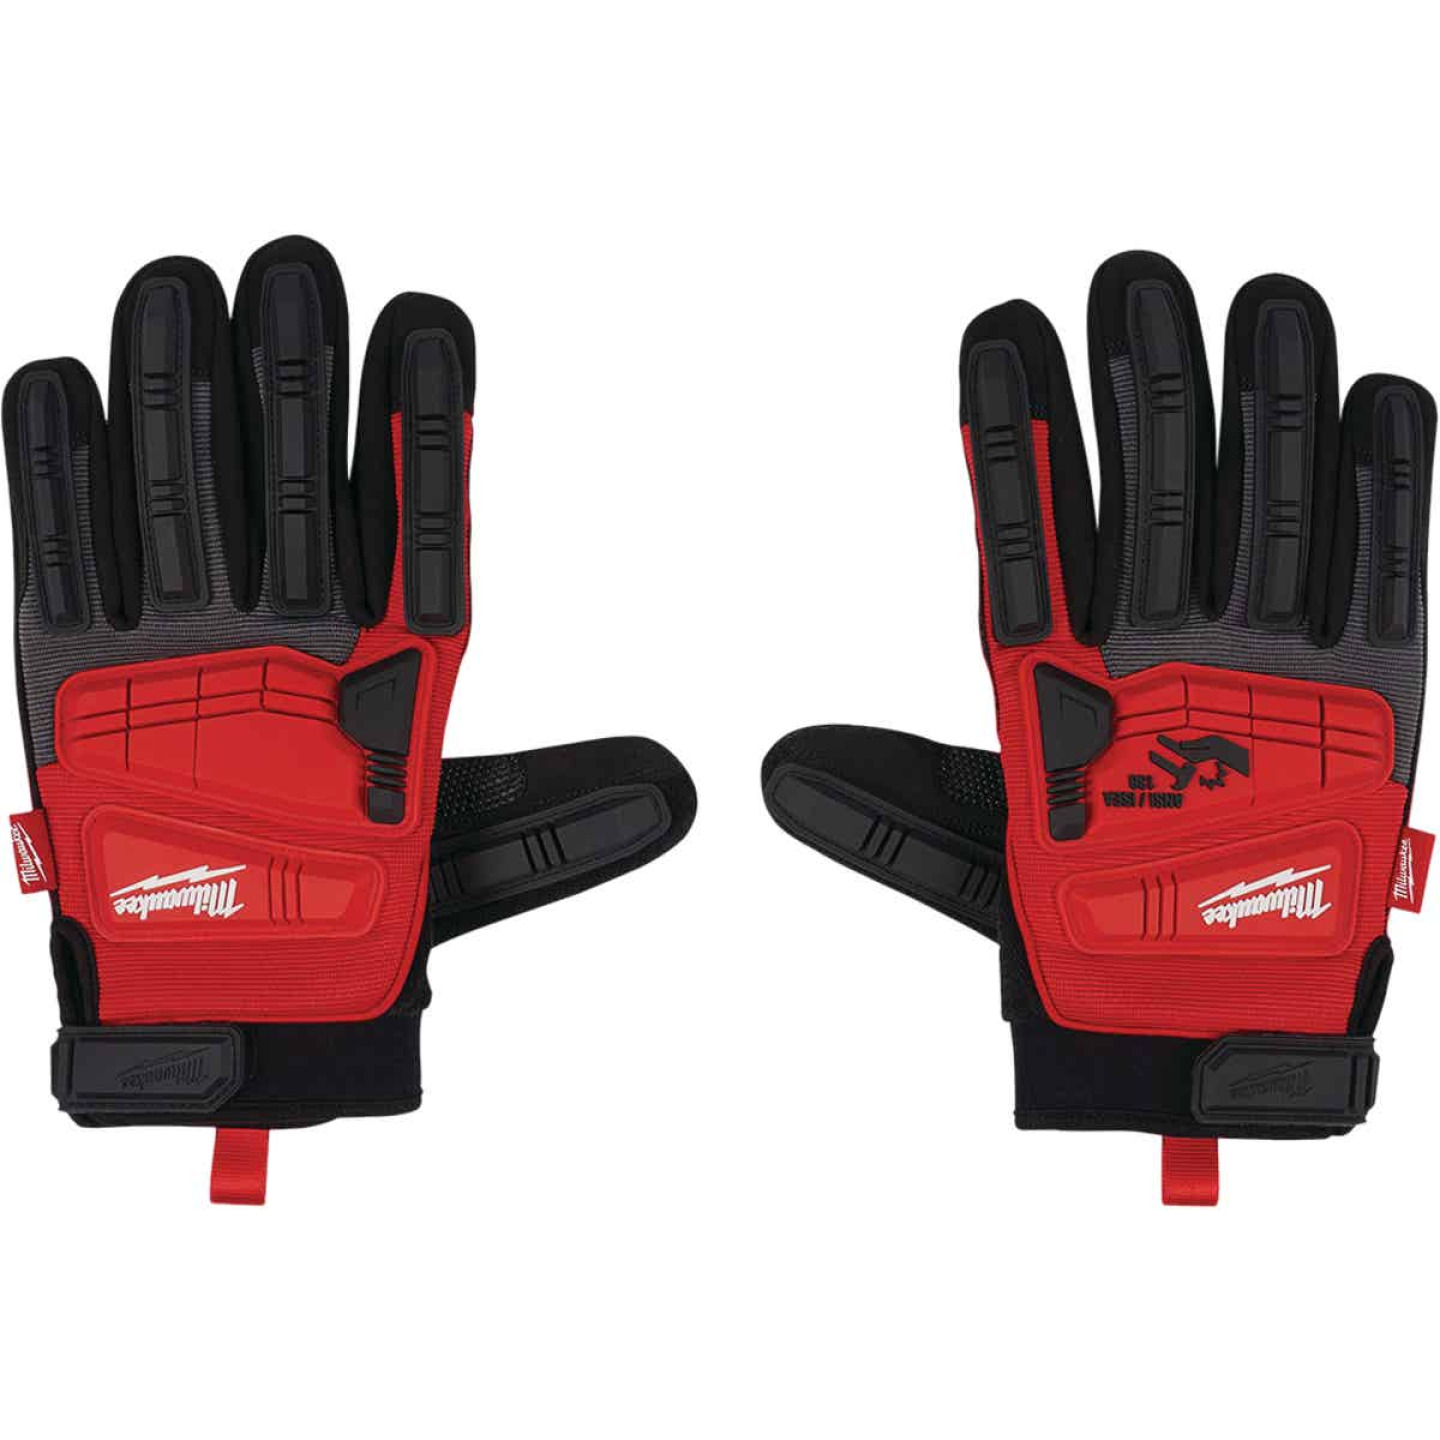 Milwaukee Men's Large Synthetic Leather Impact Demolition Glove Image 3